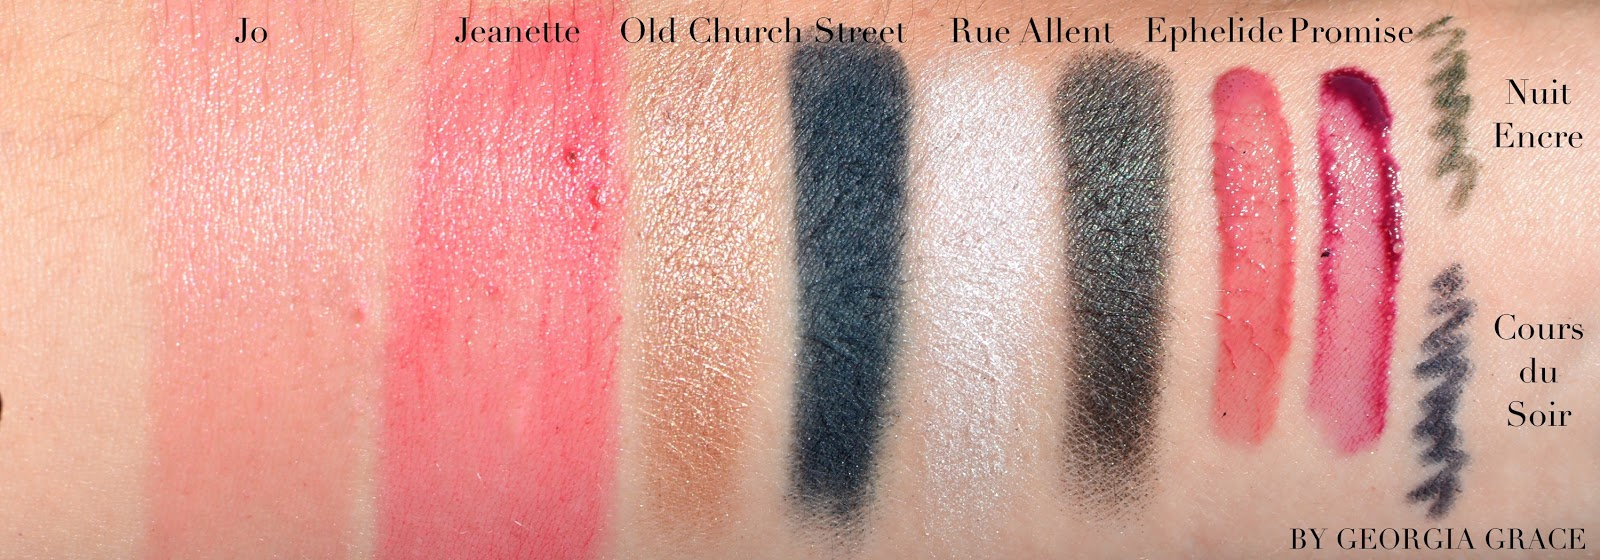 NARS x Charlotte Gainsbourg swatches review Jo Jeanette Old Church Street Rue Allent Ephelide Promise Cours du Soir Nuit Encre